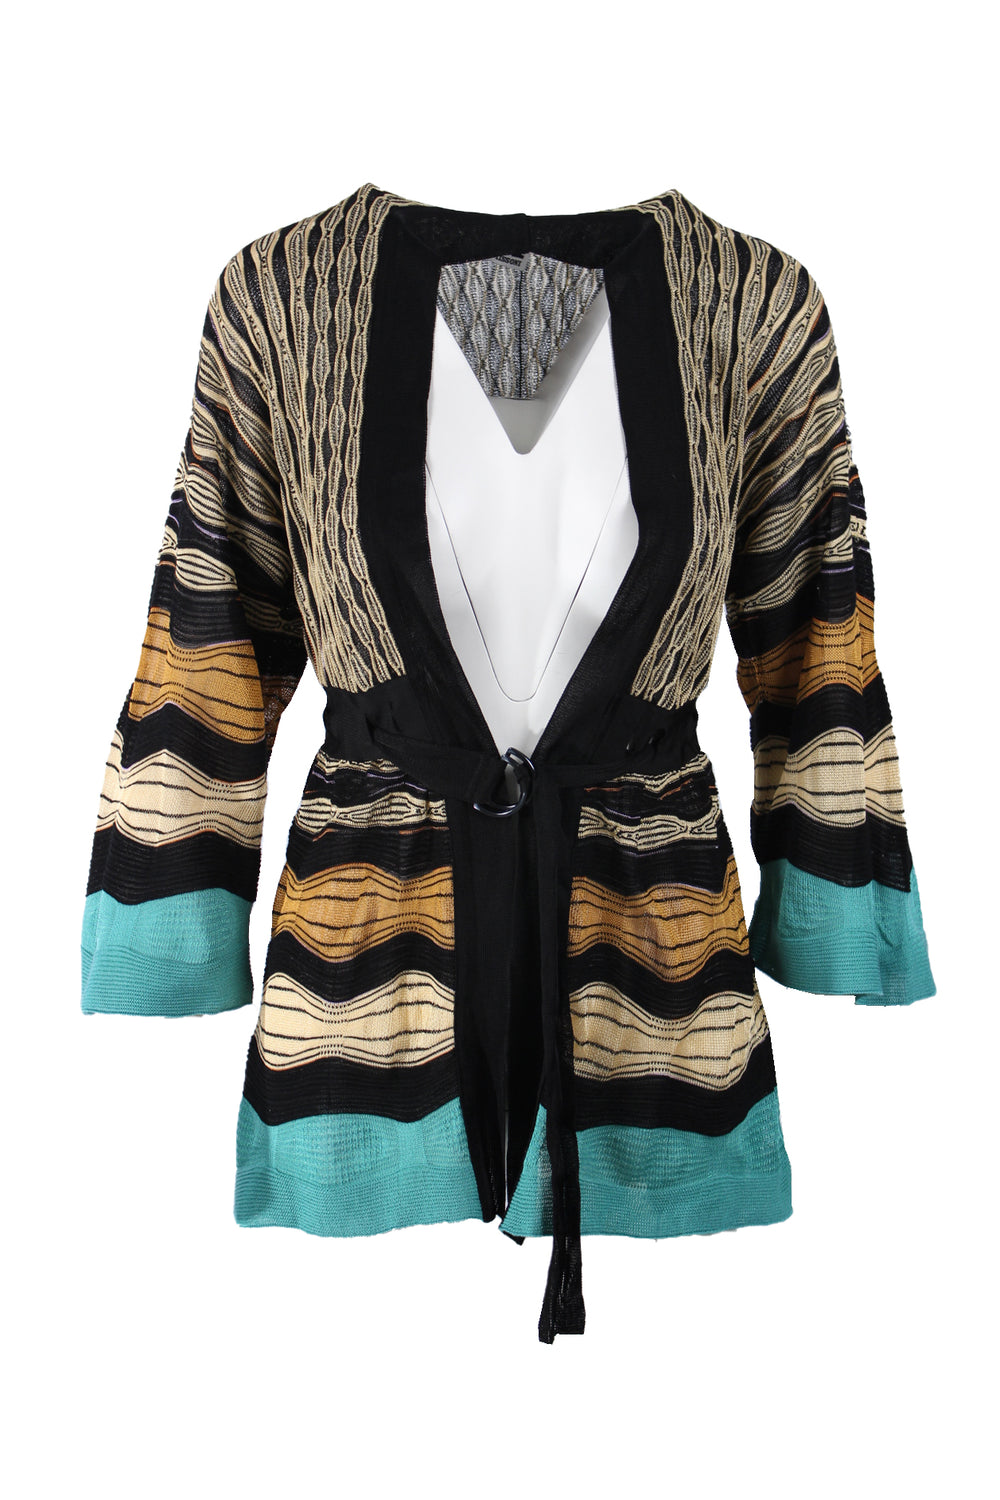 m missoni cardigan sweater. featuring tied waist with open front design. loose thread at left shoulder.